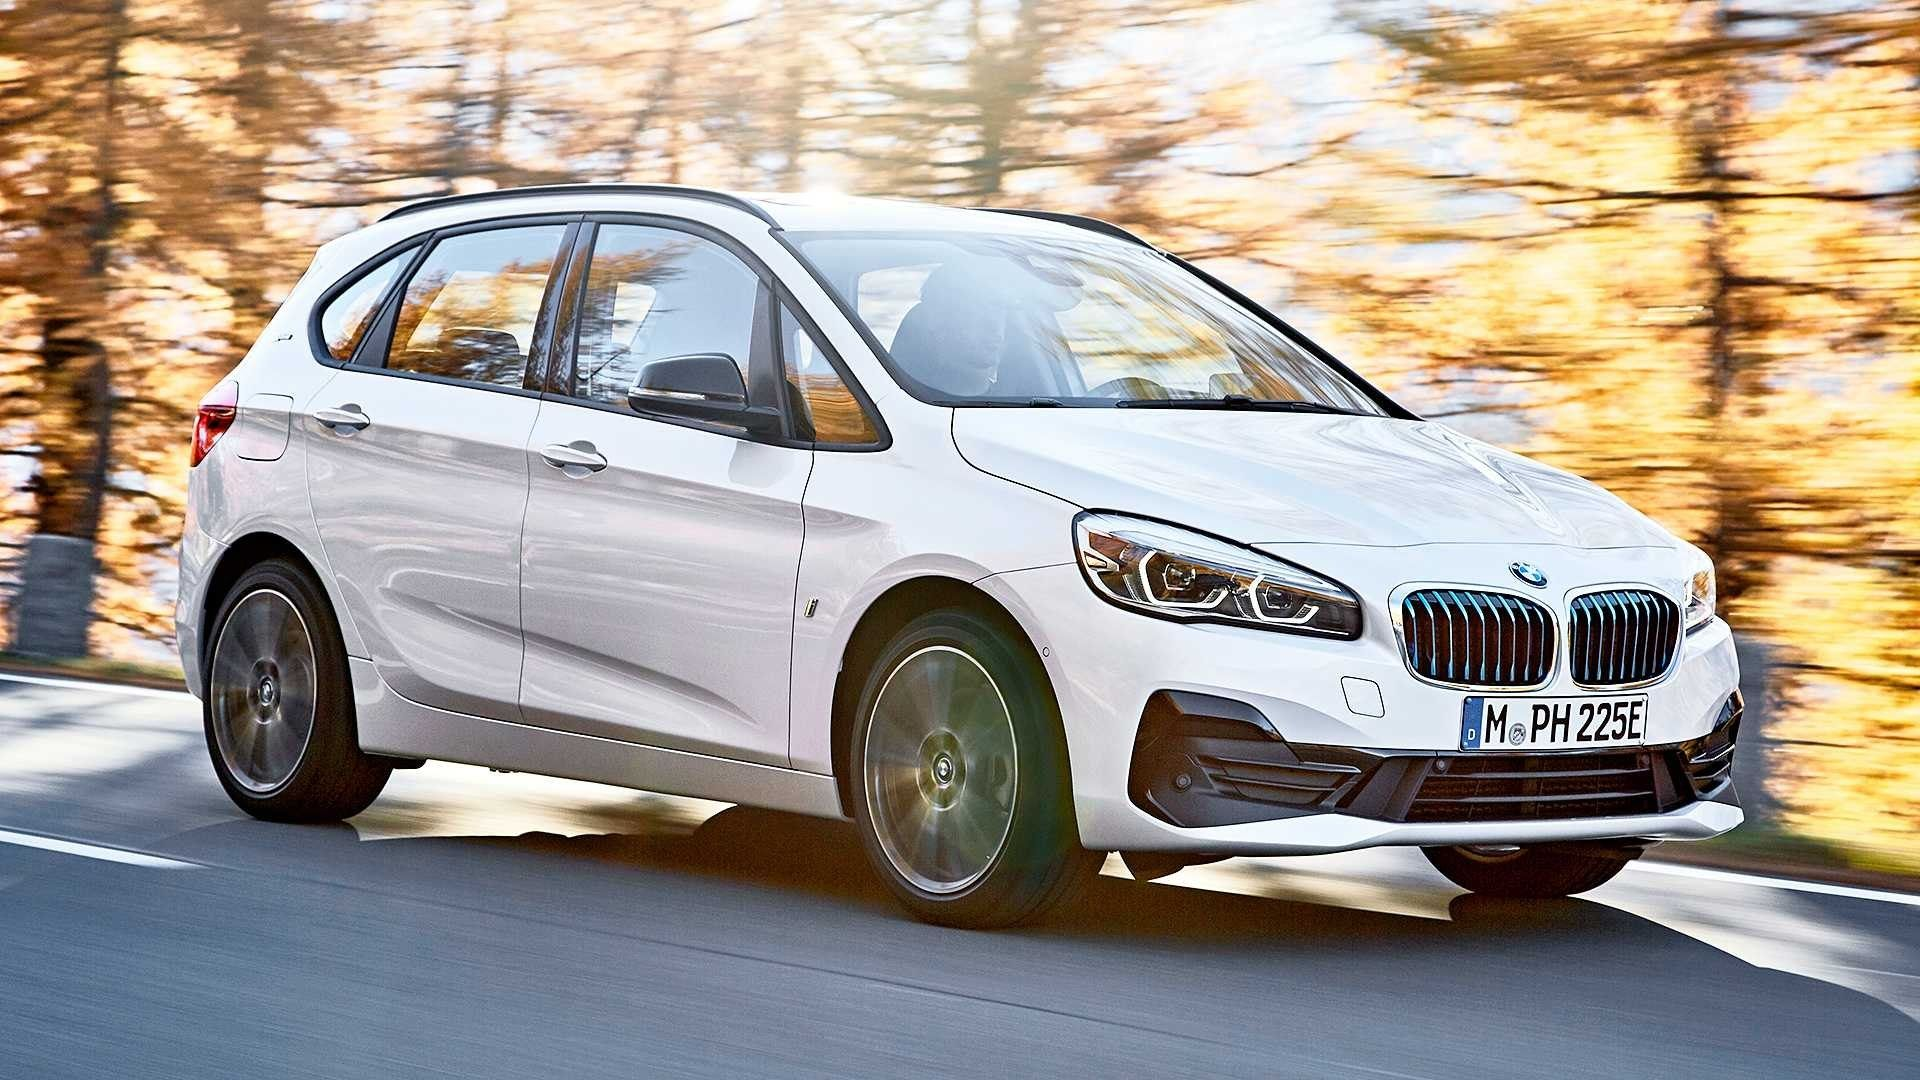 The Bmw 225xe 2020 Specs And Review Upcoming Cars Bmw Specs